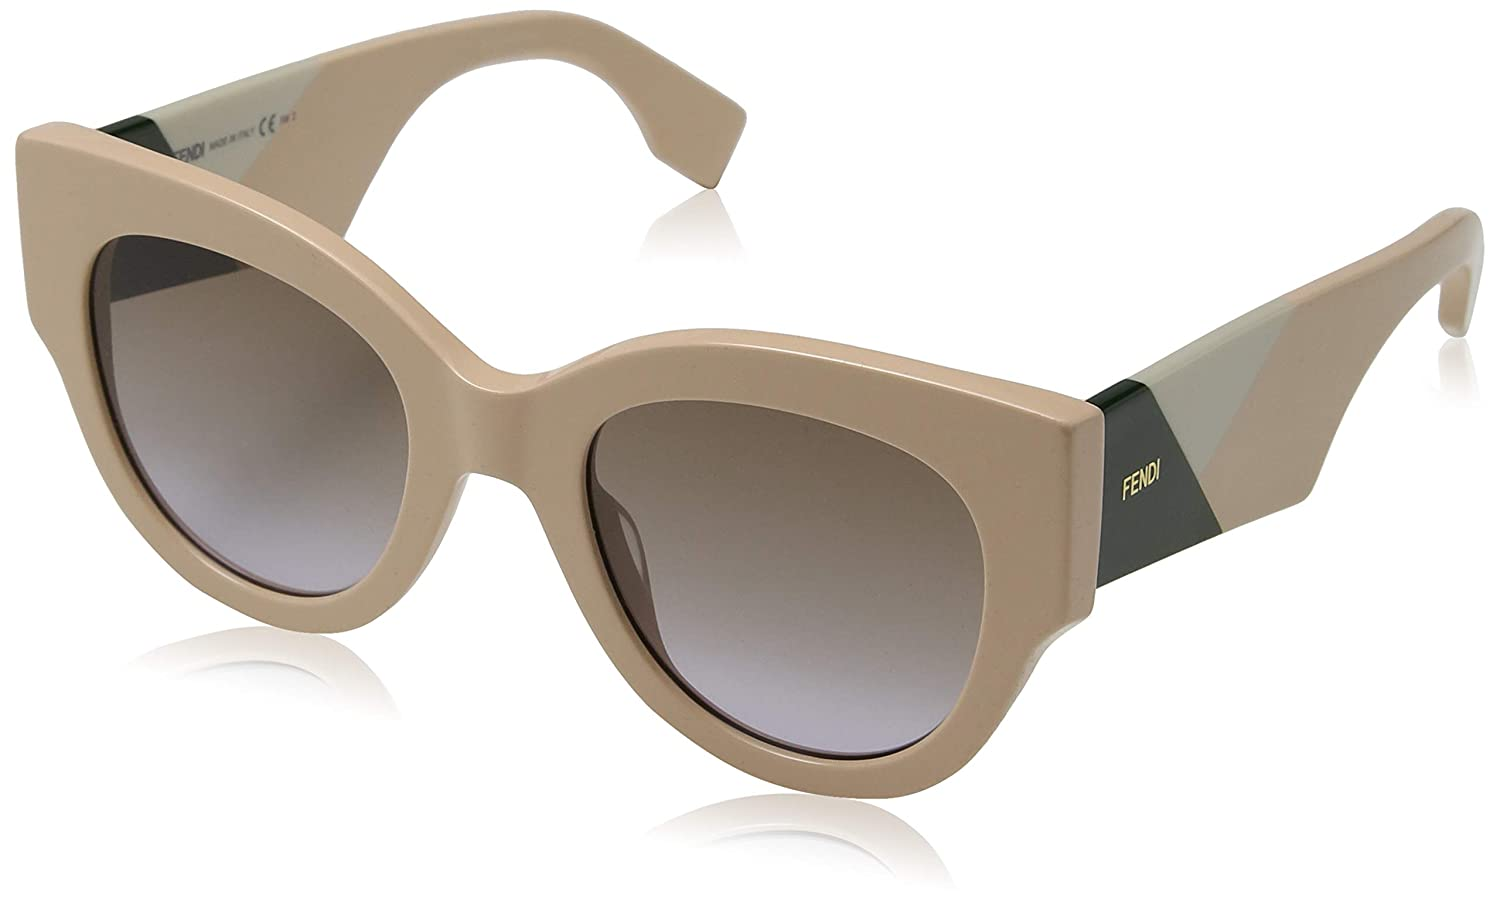 d10b907bde3a Amazon.com  Fendi Women s Cat Eye Colorblock Sunglasses